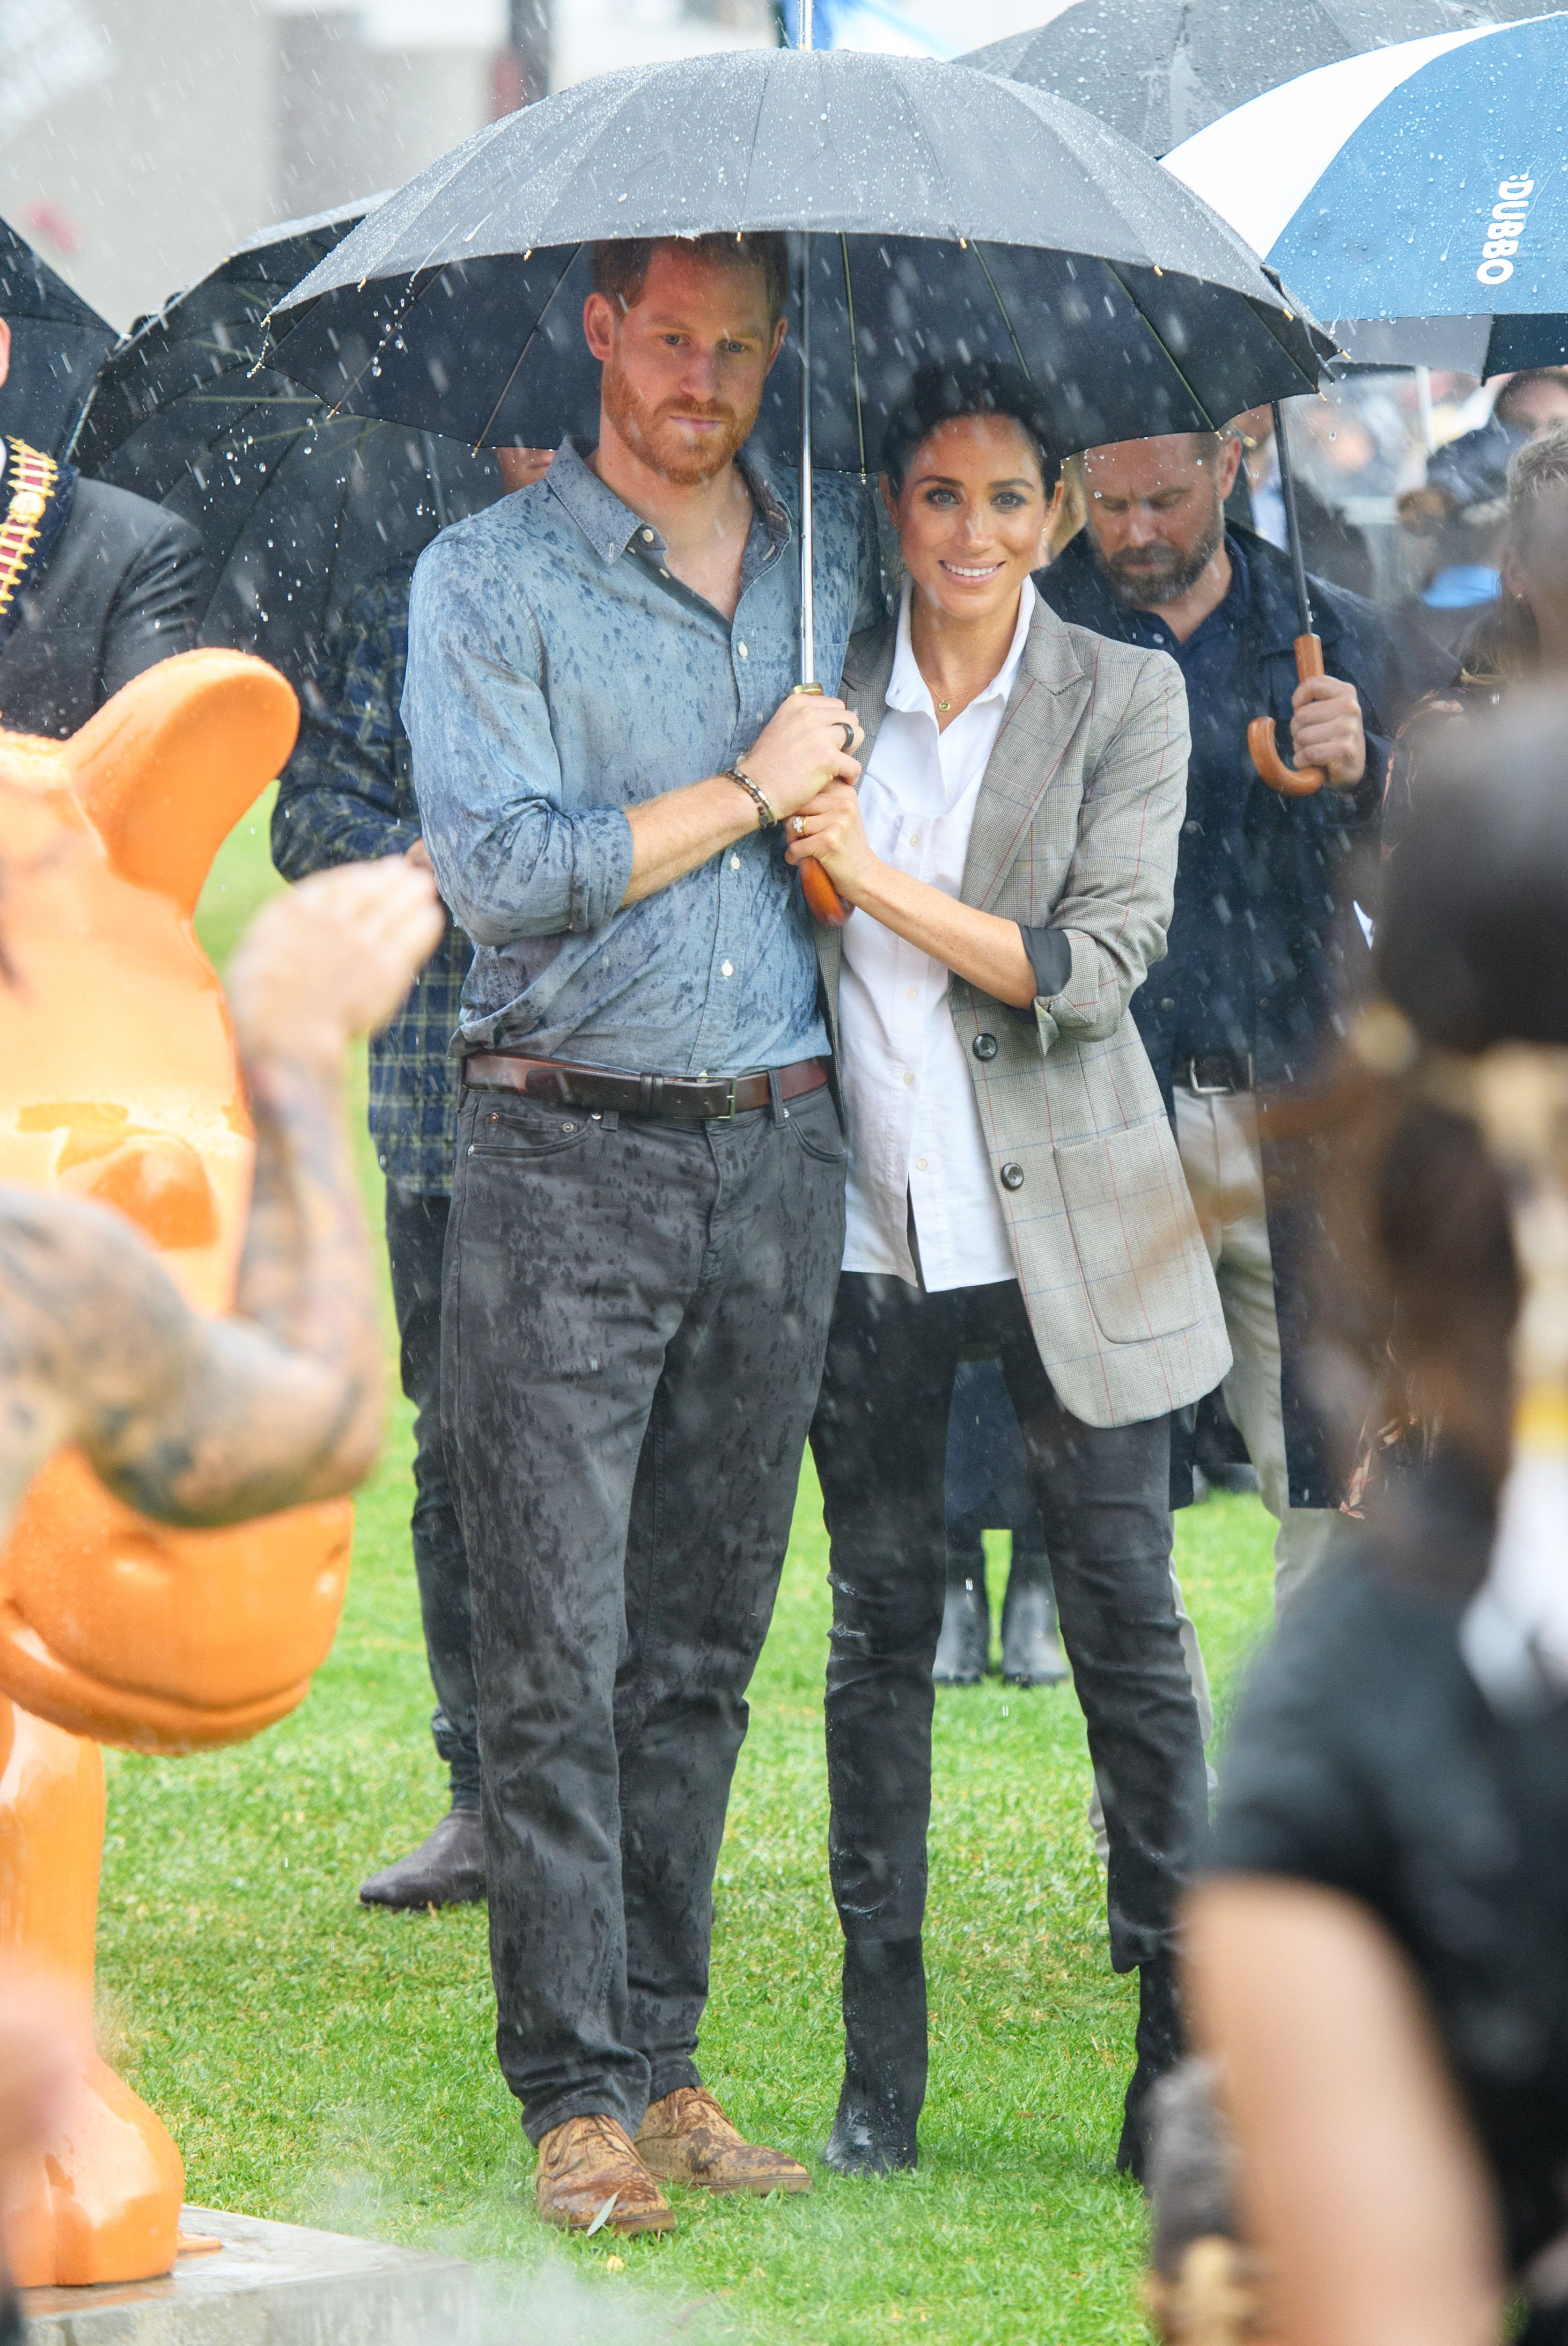 Prince Harry and Meghan Duchess of Sussex tour of Australia - 17 Oct 2018